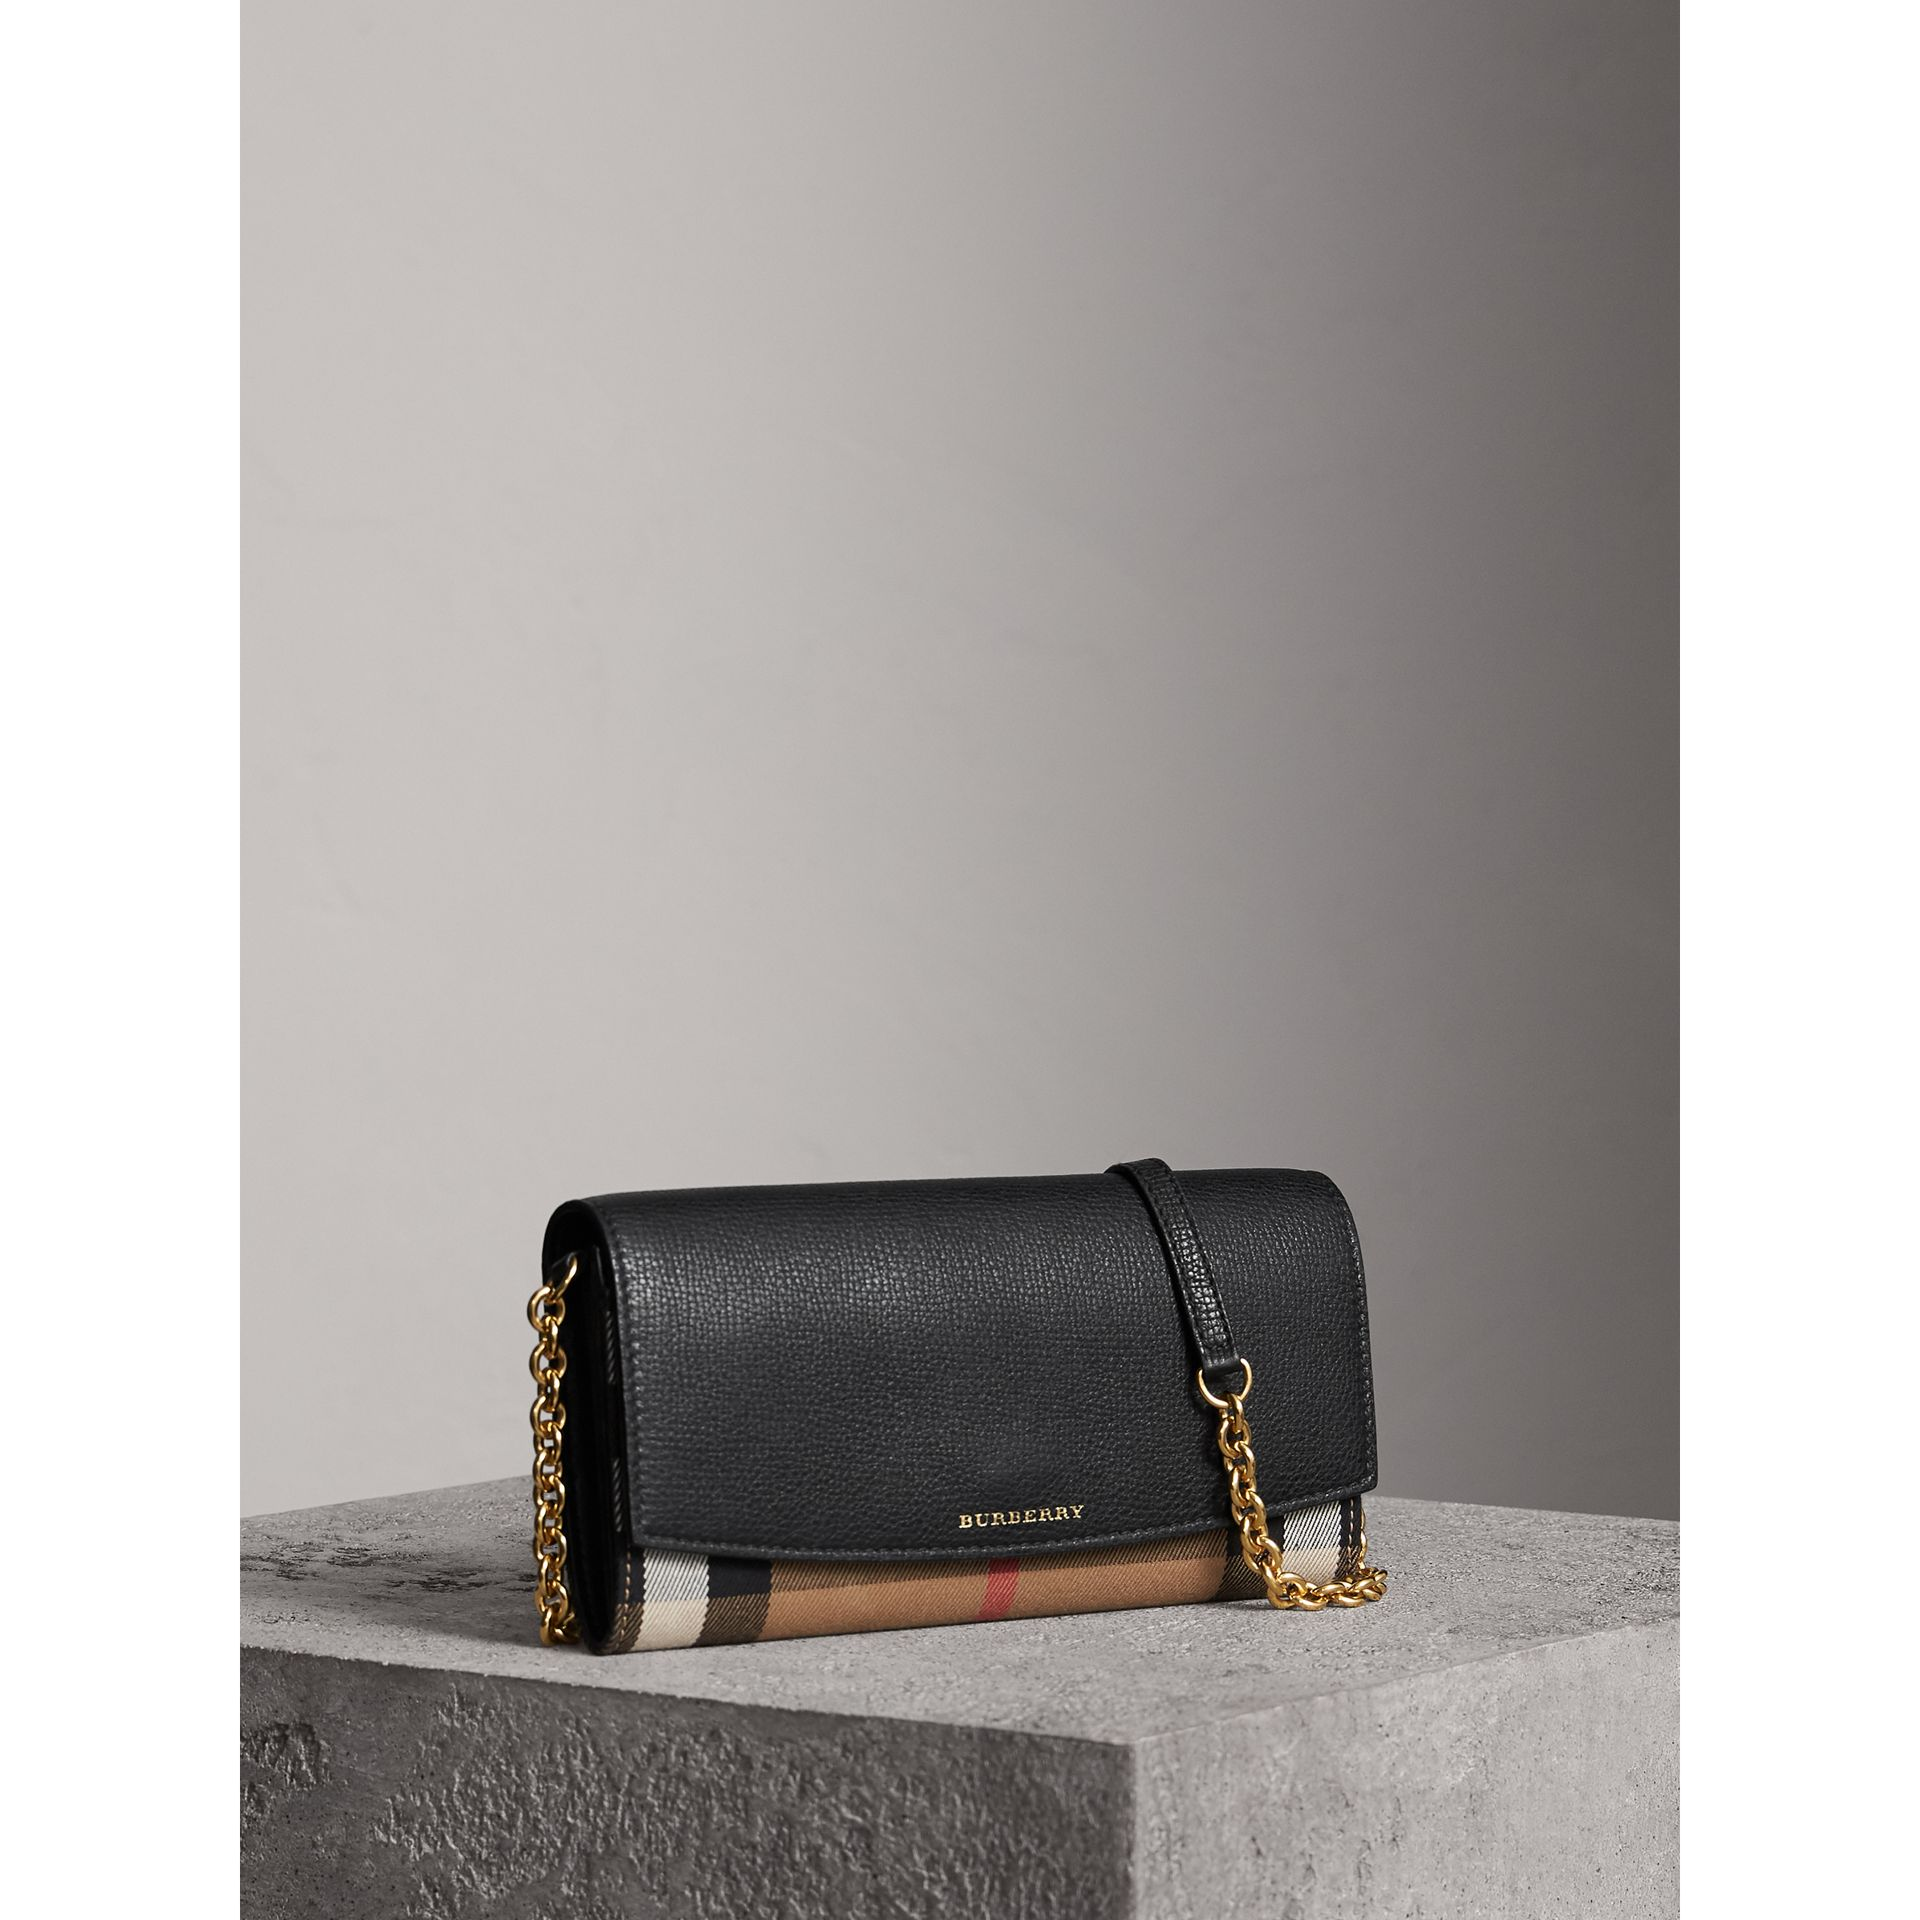 House Check and Leather Wallet with Chain in Black - Women | Burberry - gallery image 0